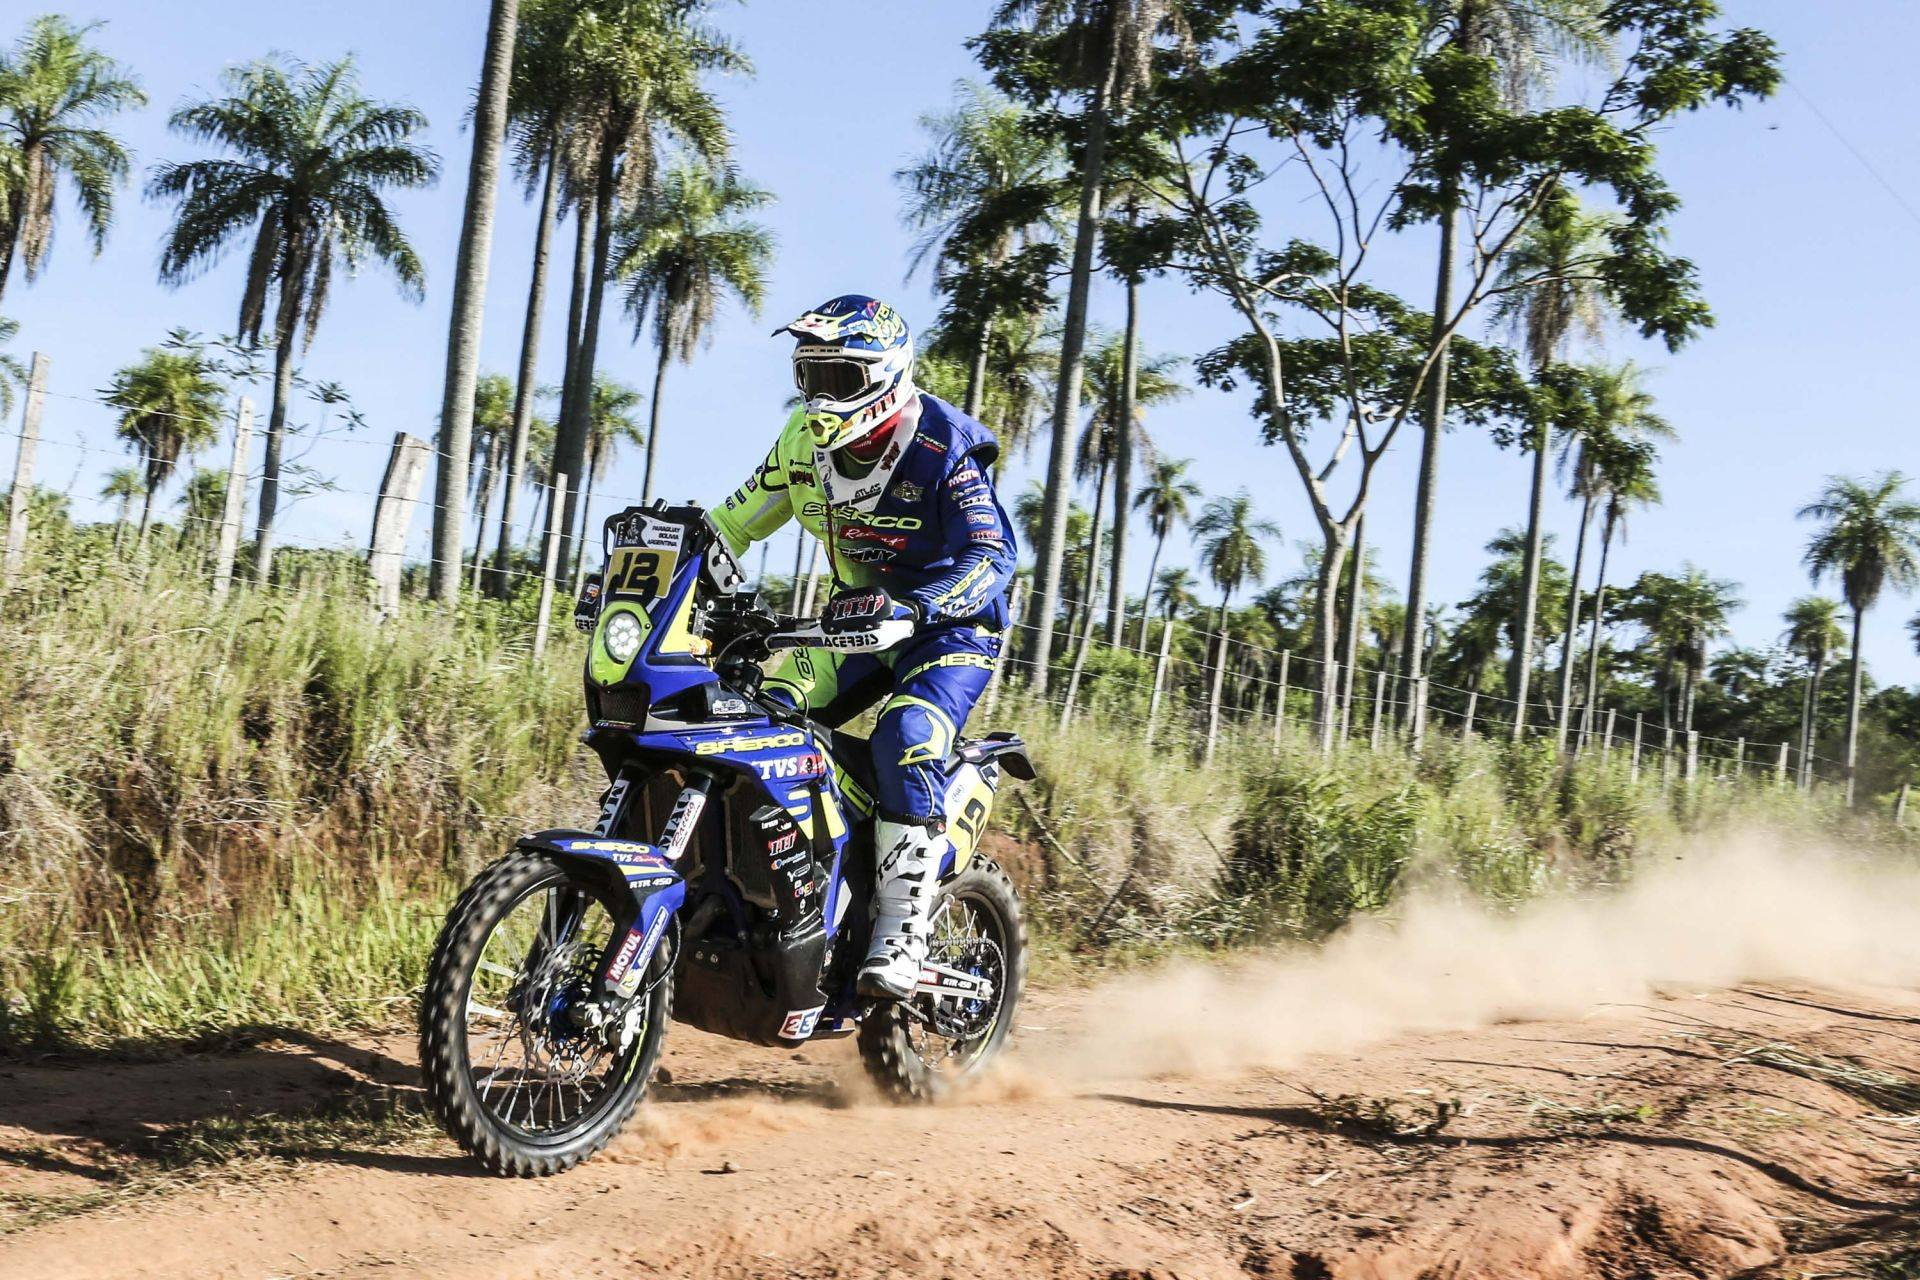 Joan Pedrero (Sherco TVS Factory Rally Team) has a magnificent start to the Dakar by winning the first stage between Asuncion and Resistancia